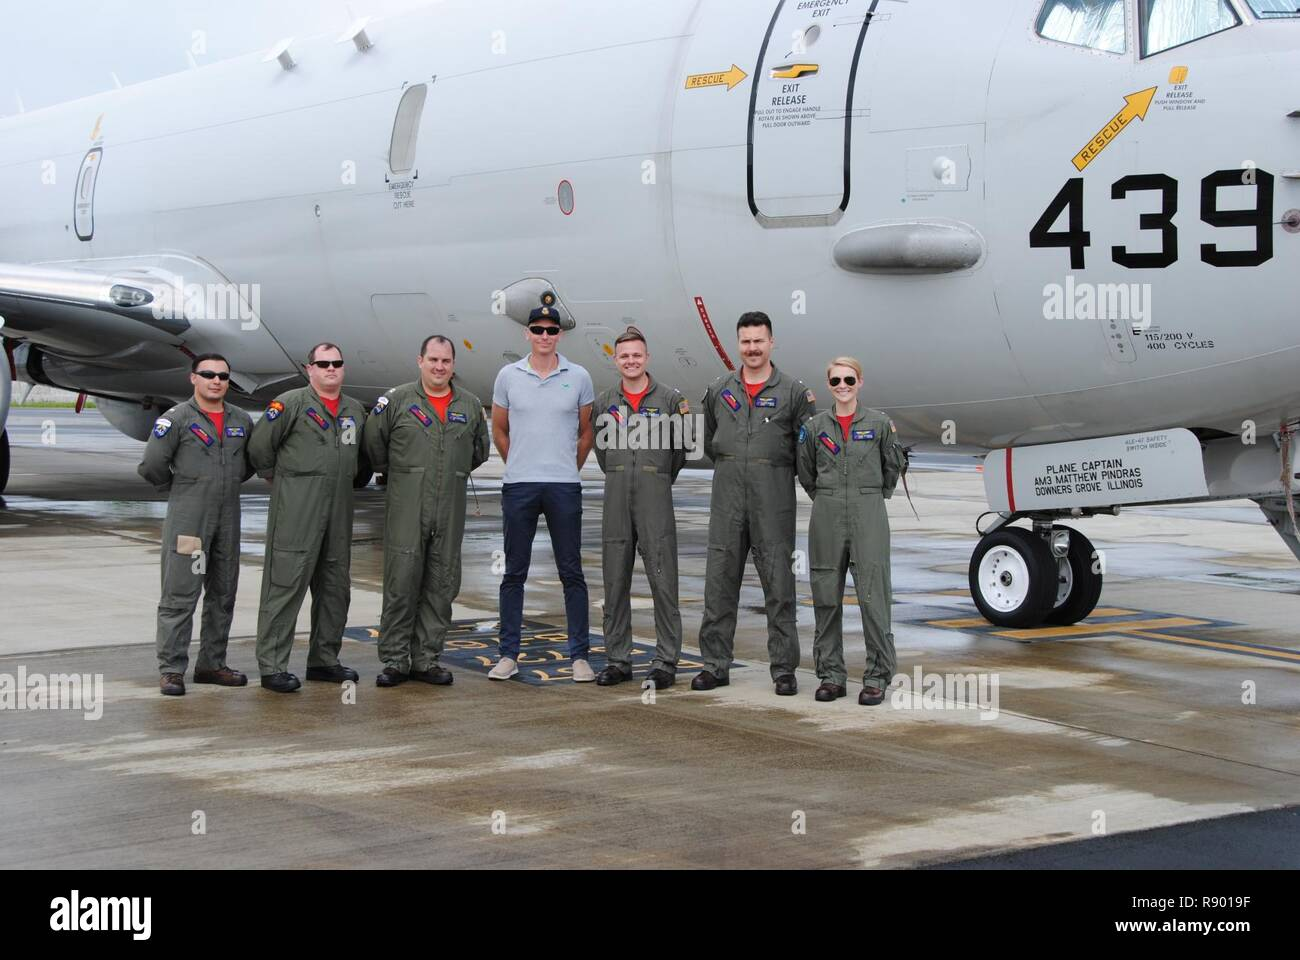 KOROR, Palau (March 11, 2017) The Red Lancers of Patrol Squadron Ten (VP-10) pose in front of the P-8A with their Maritime Surveillance Coordinator after arriving on detachment in Palau. The Red Lancers flew to Palau to participate in Rai Balang, a Forum Fisheries Agency operation that conducted surveillance missions to deter illegal fishing in their national waters and Exclusive Economic Zone (EEZ). - Stock Image